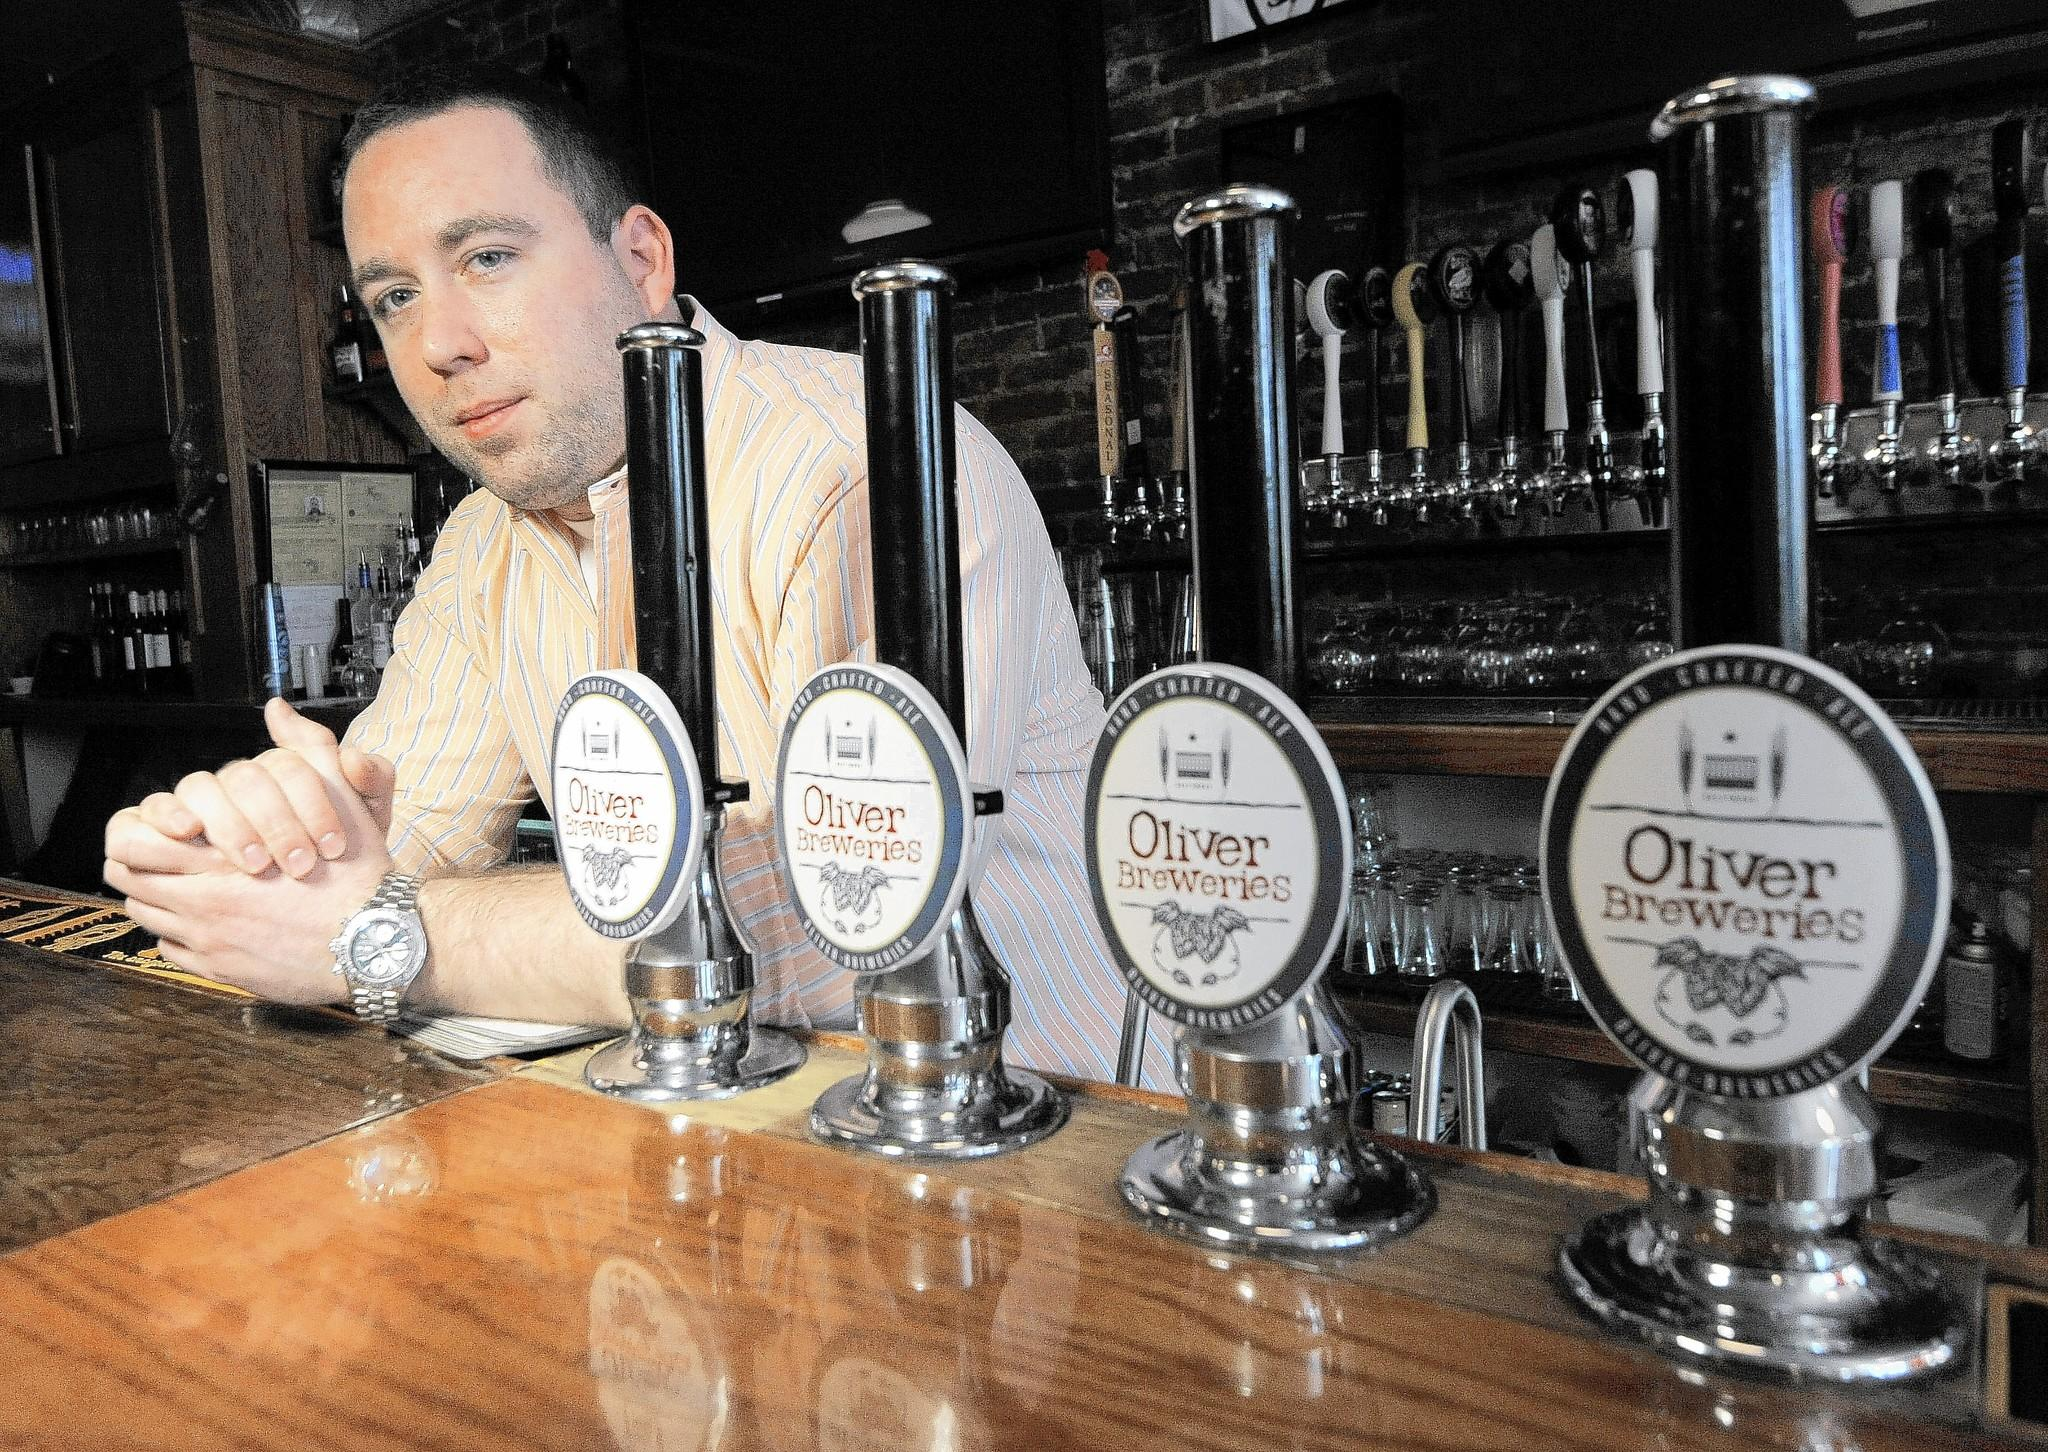 Justin Dvorkin, co-owner of Oliver Breweries, in the bar of Pratt Street Alehouse. Oliver ales and beer are currently made here, but production is set move to Clifton Park.